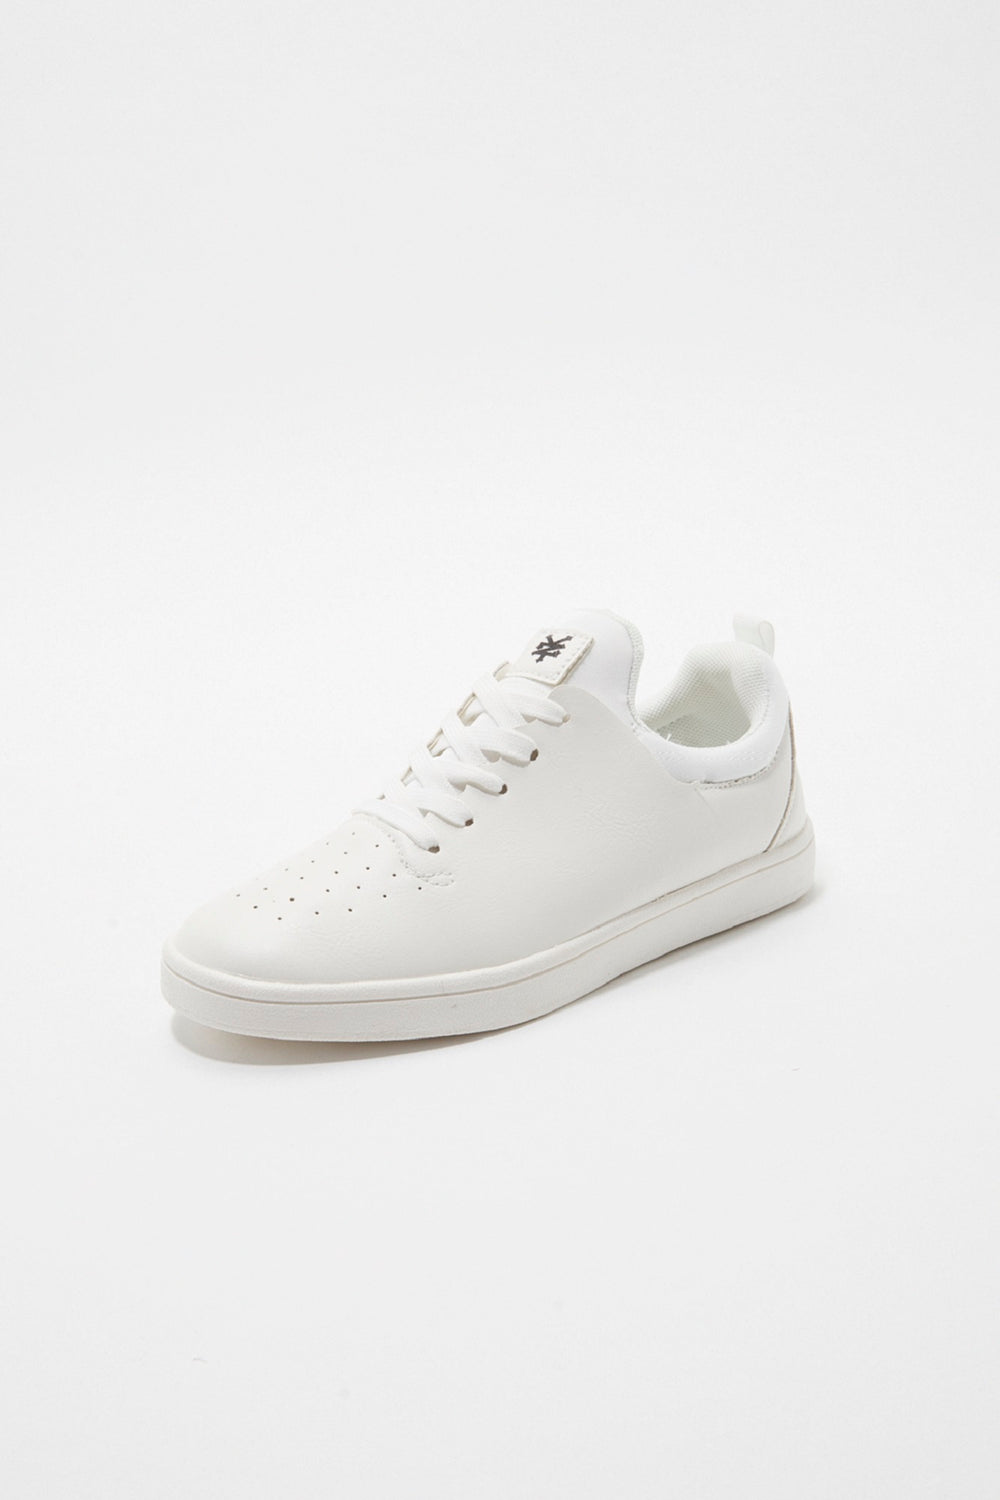 Zoo York Youth Skate Shoes White